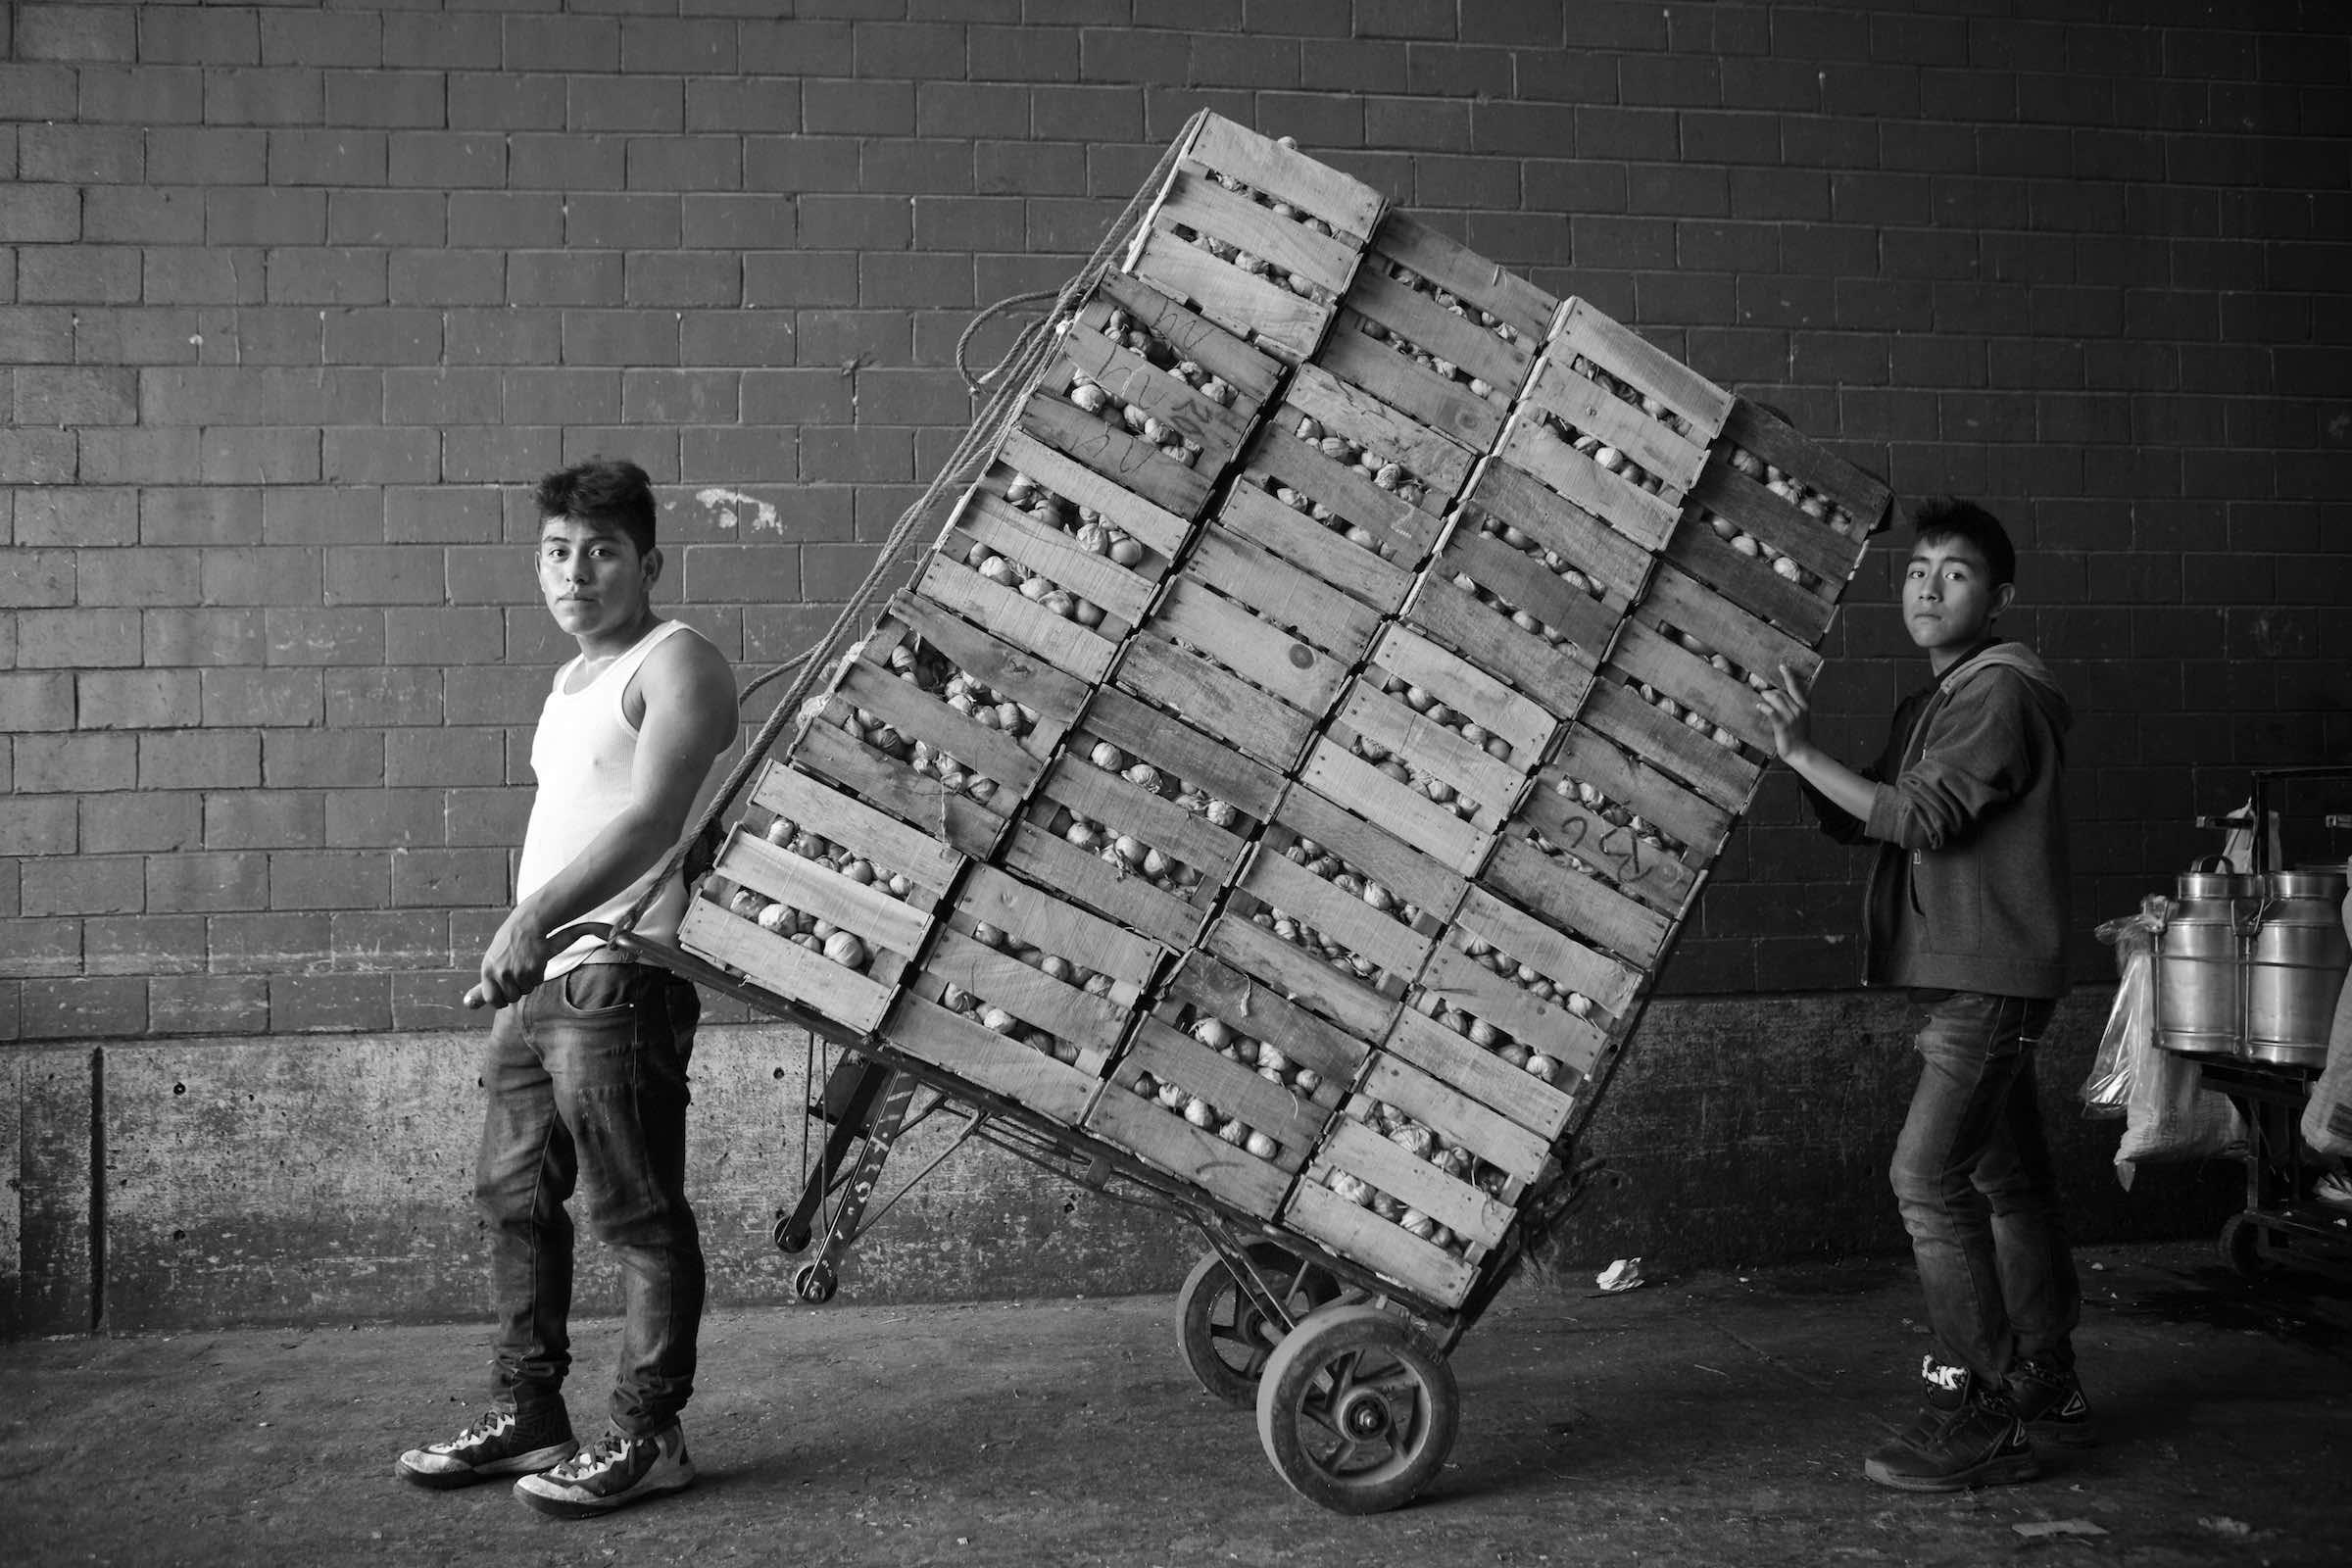 Jody Horton Photography - Young men hauling crates of produce together through the market, shot in B&W.